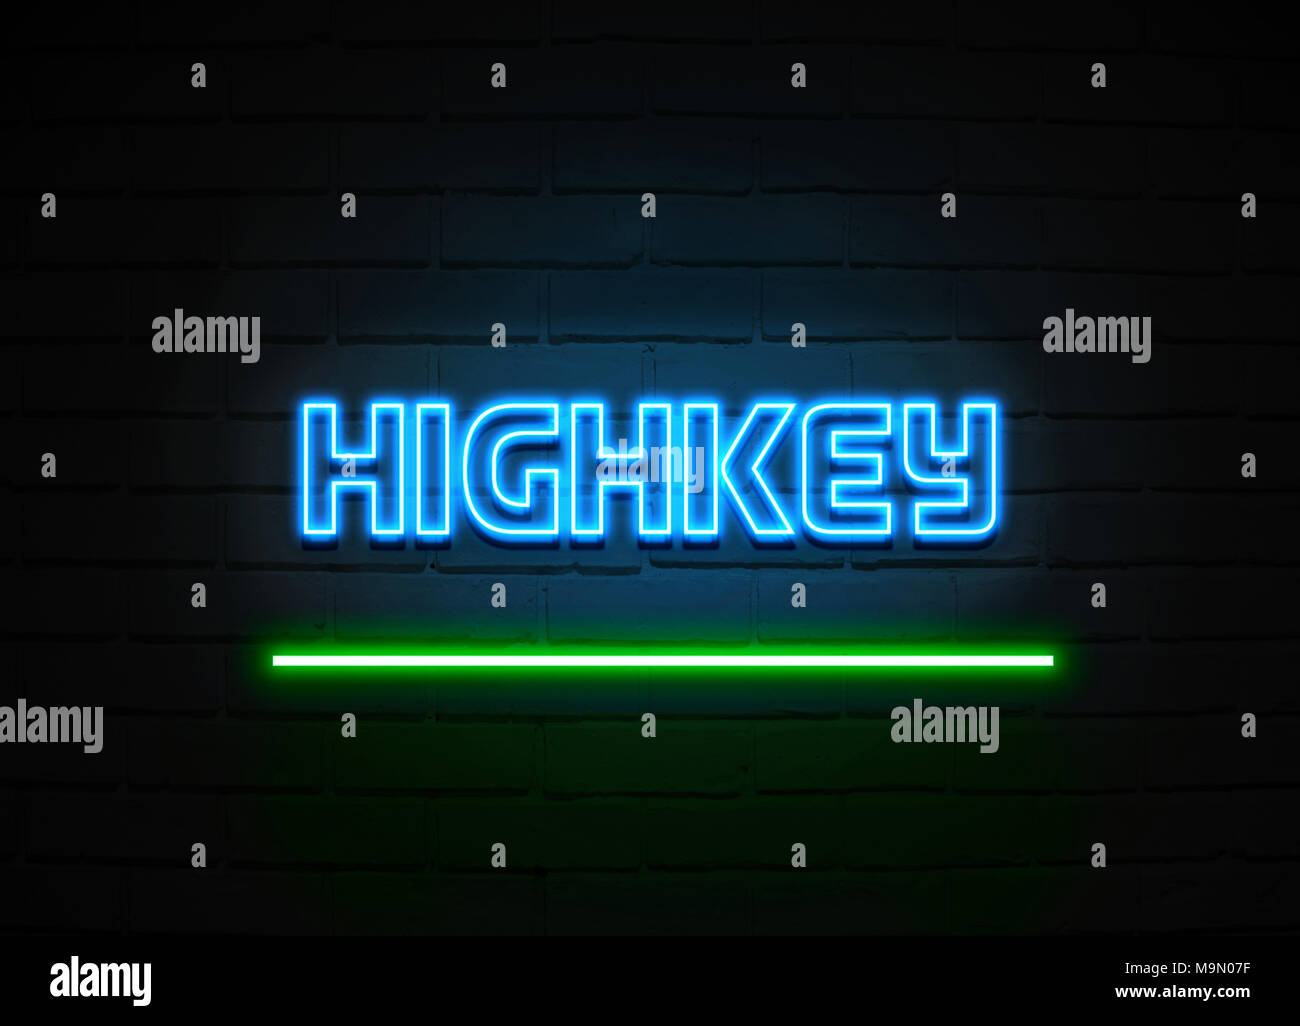 Highkey neon sign - Glowing Neon Sign on brickwall wall - 3D rendered royalty free stock illustration. - Stock Image